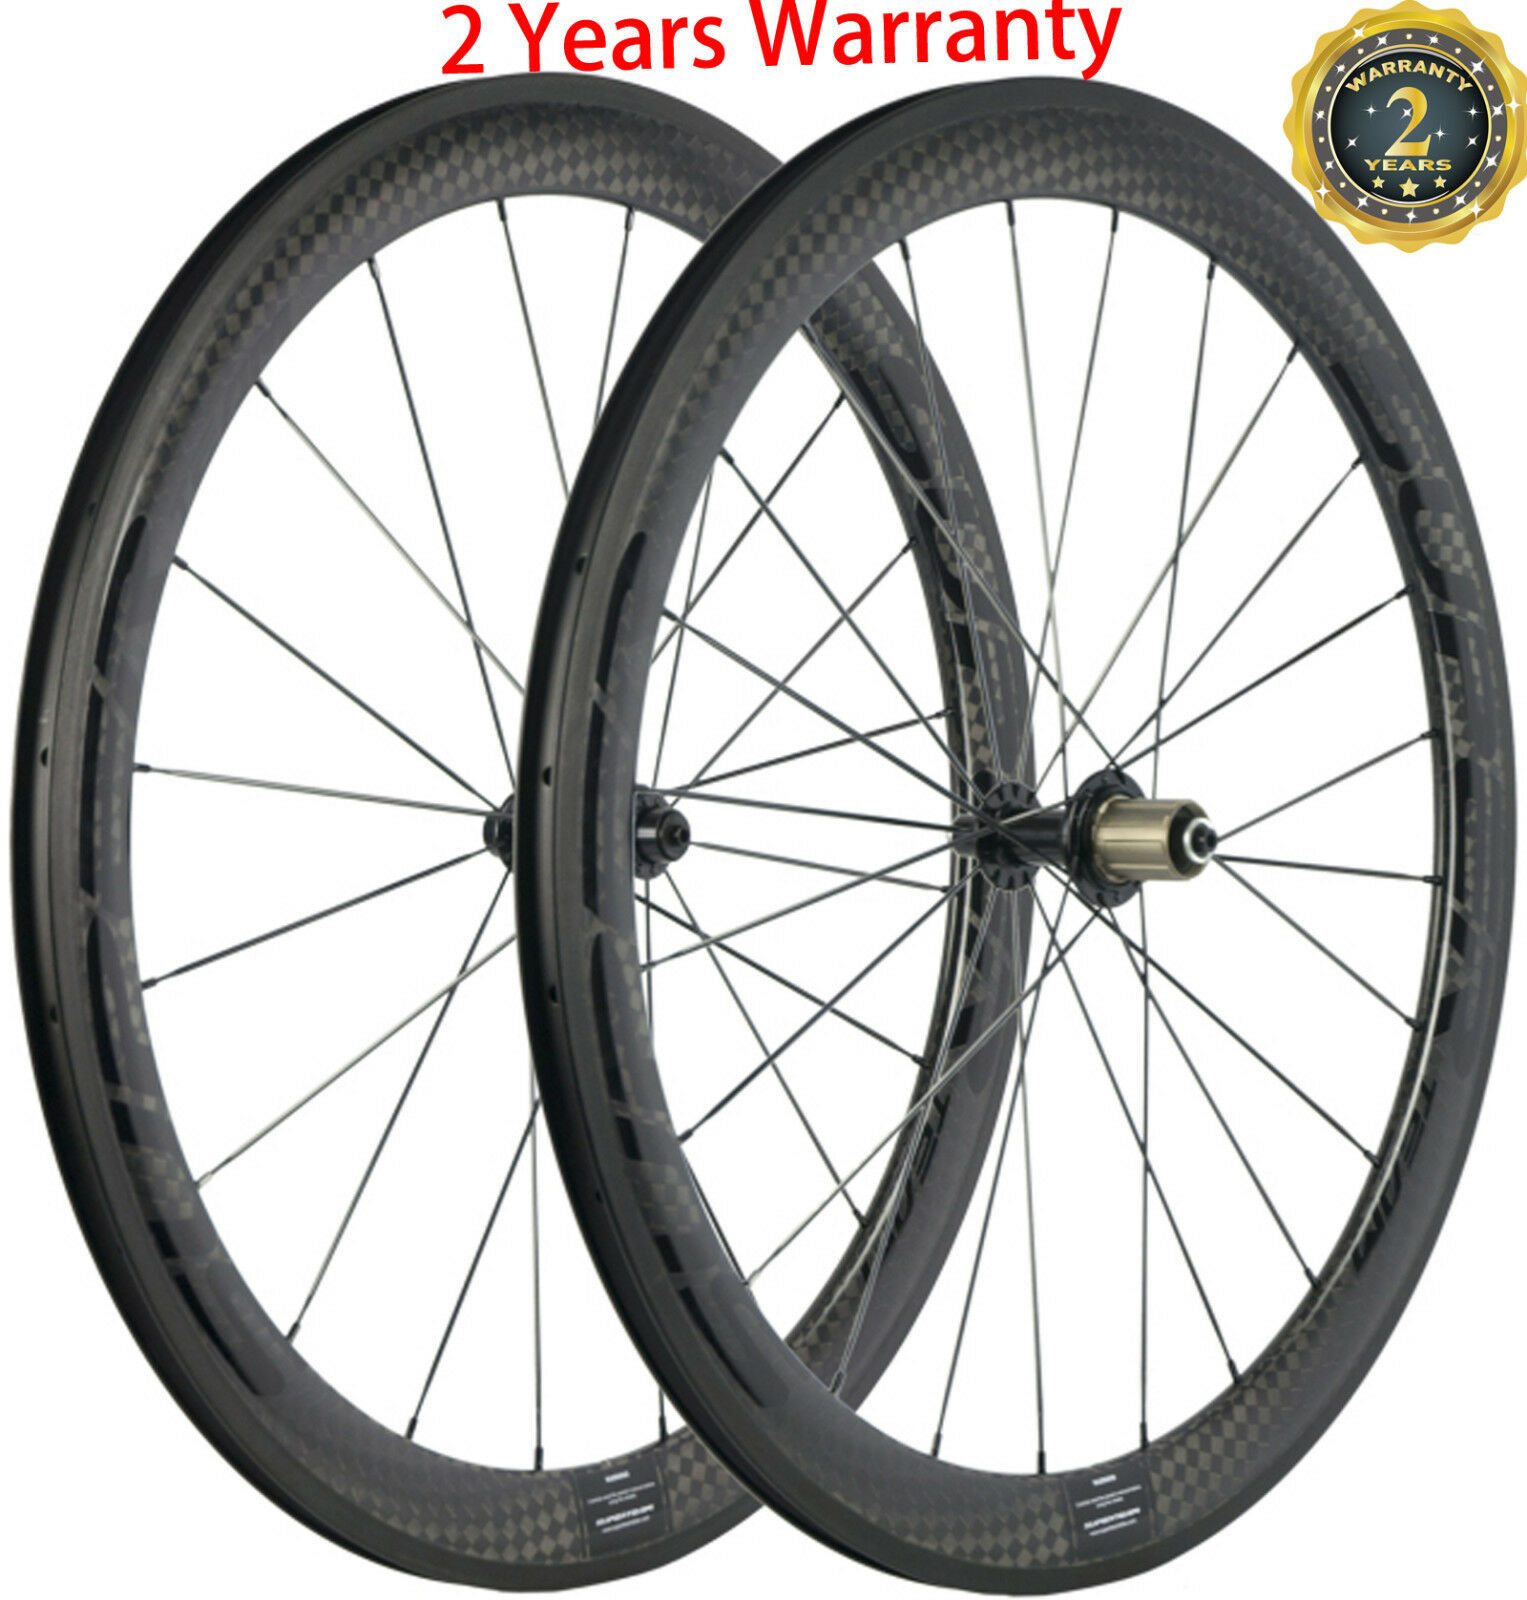 Full Carbon Fiber Wheels 25mm U Shape Wheelset 50mm Bicycle 12k Ceramic Bearing